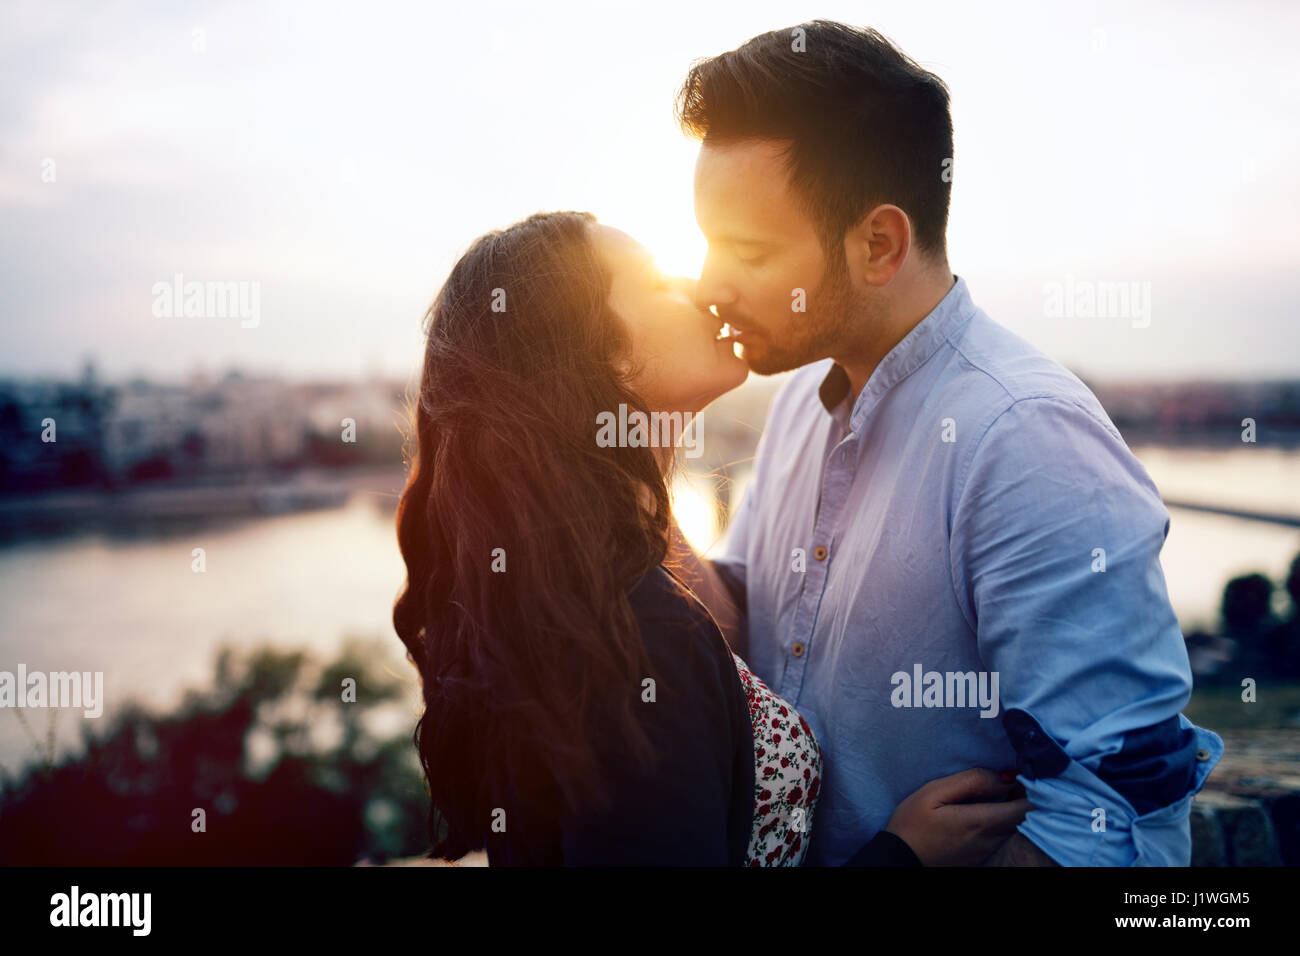 Romantic couple in love cuddling and kissing outdoors during sunset romantic couple in love cuddling and kissing outdoors during sunset altavistaventures Choice Image